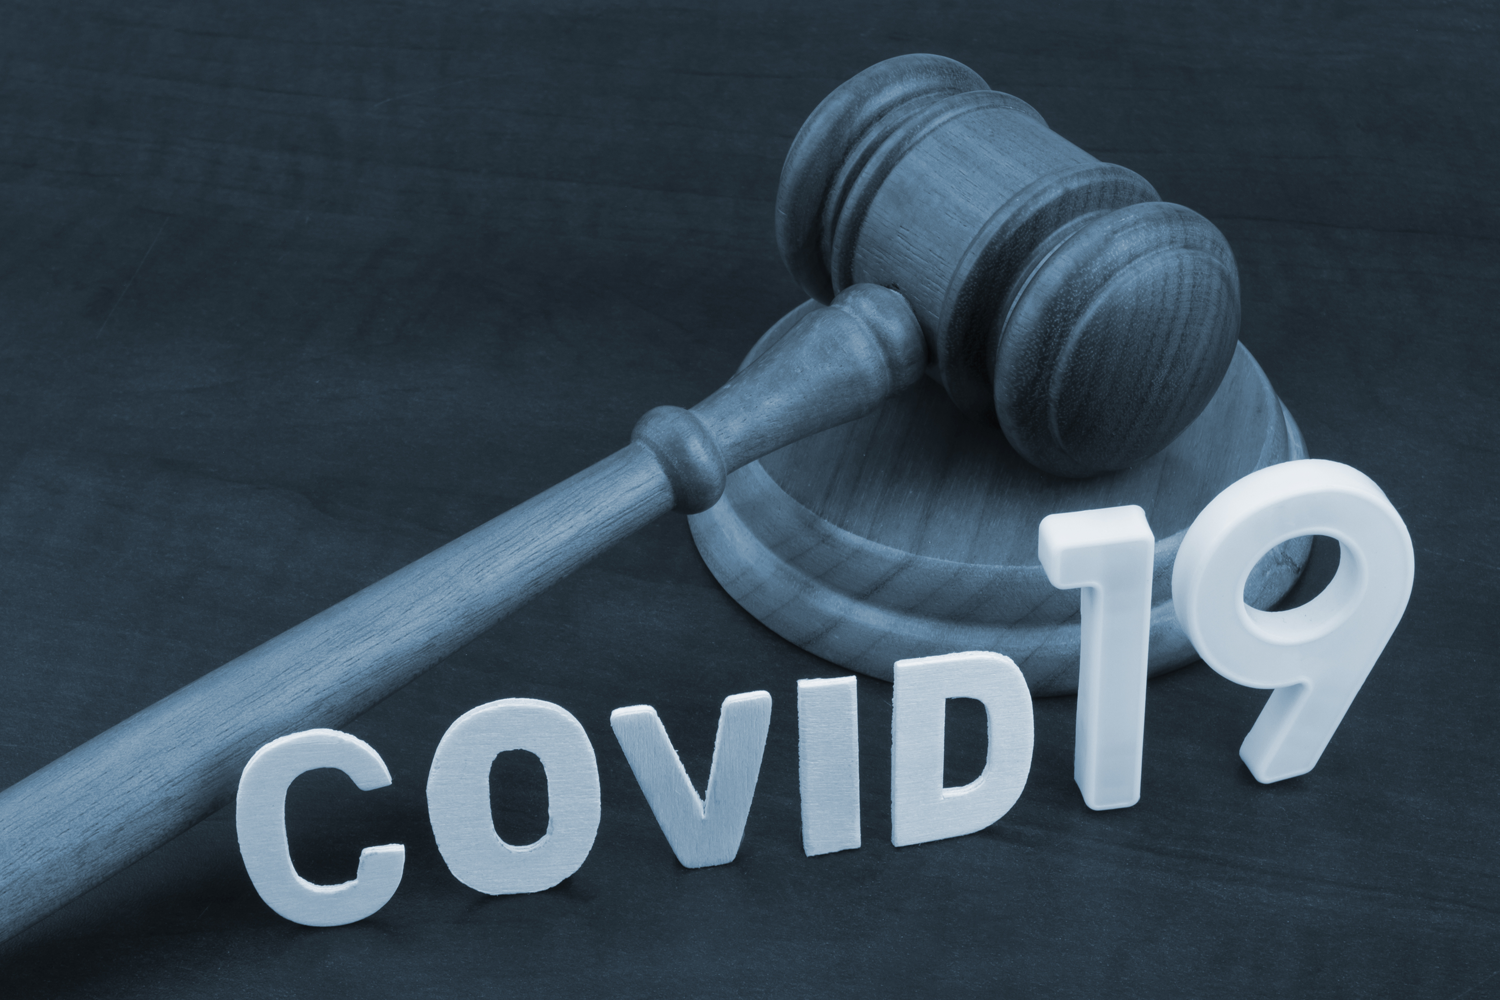 child support san antonio bexar county boerne kendall county child custody family law covid-19